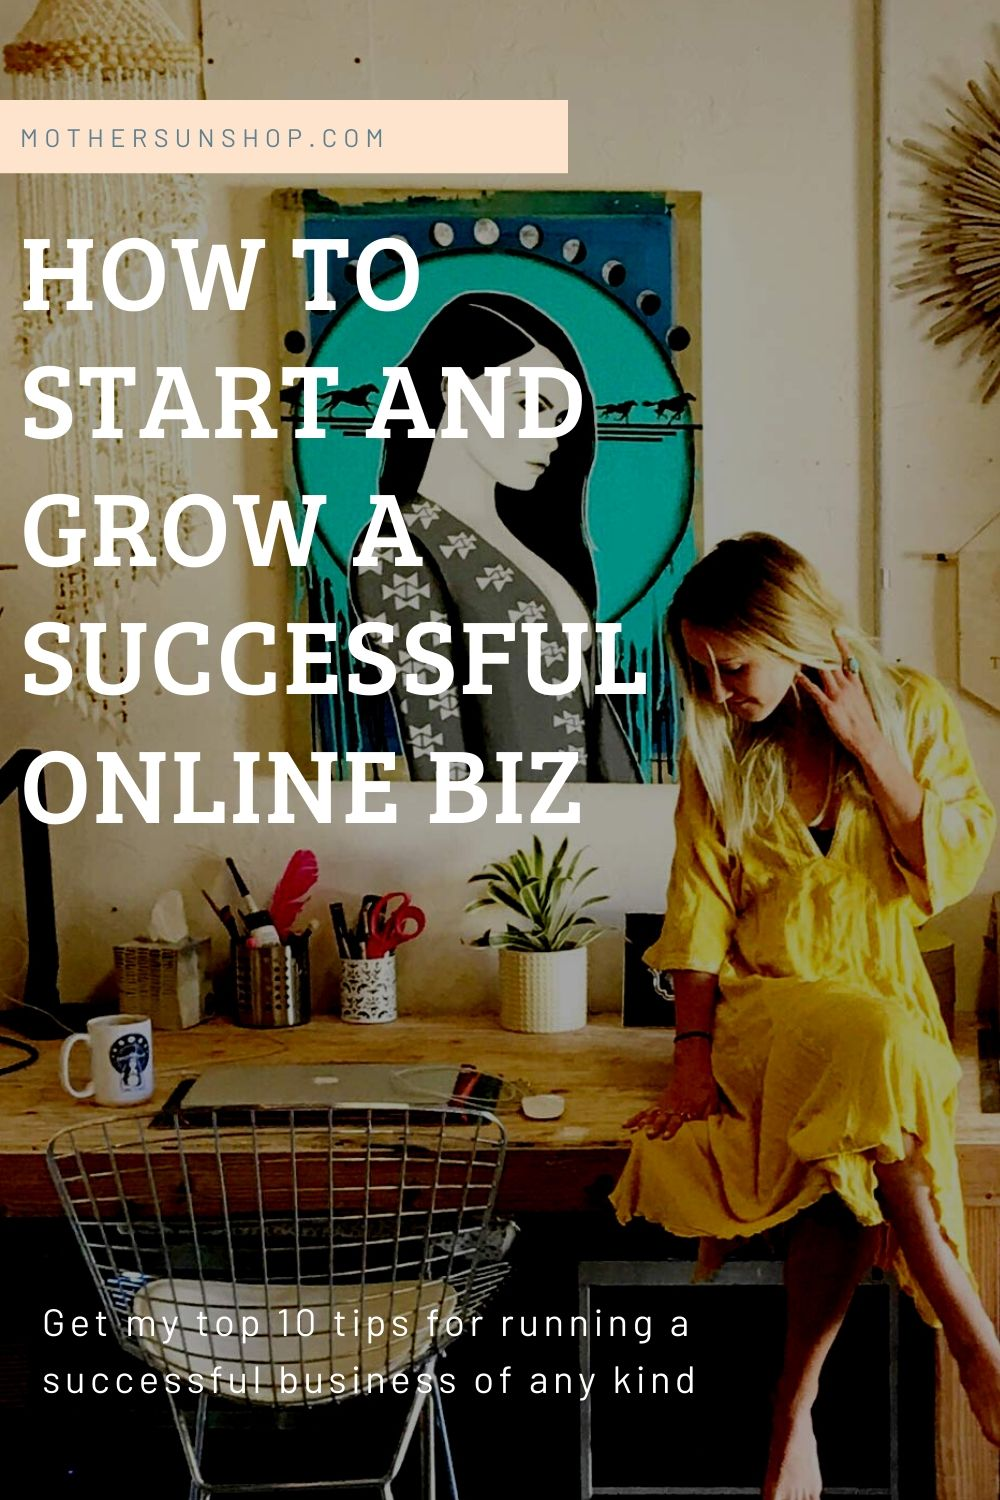 My Top My 10 business tips